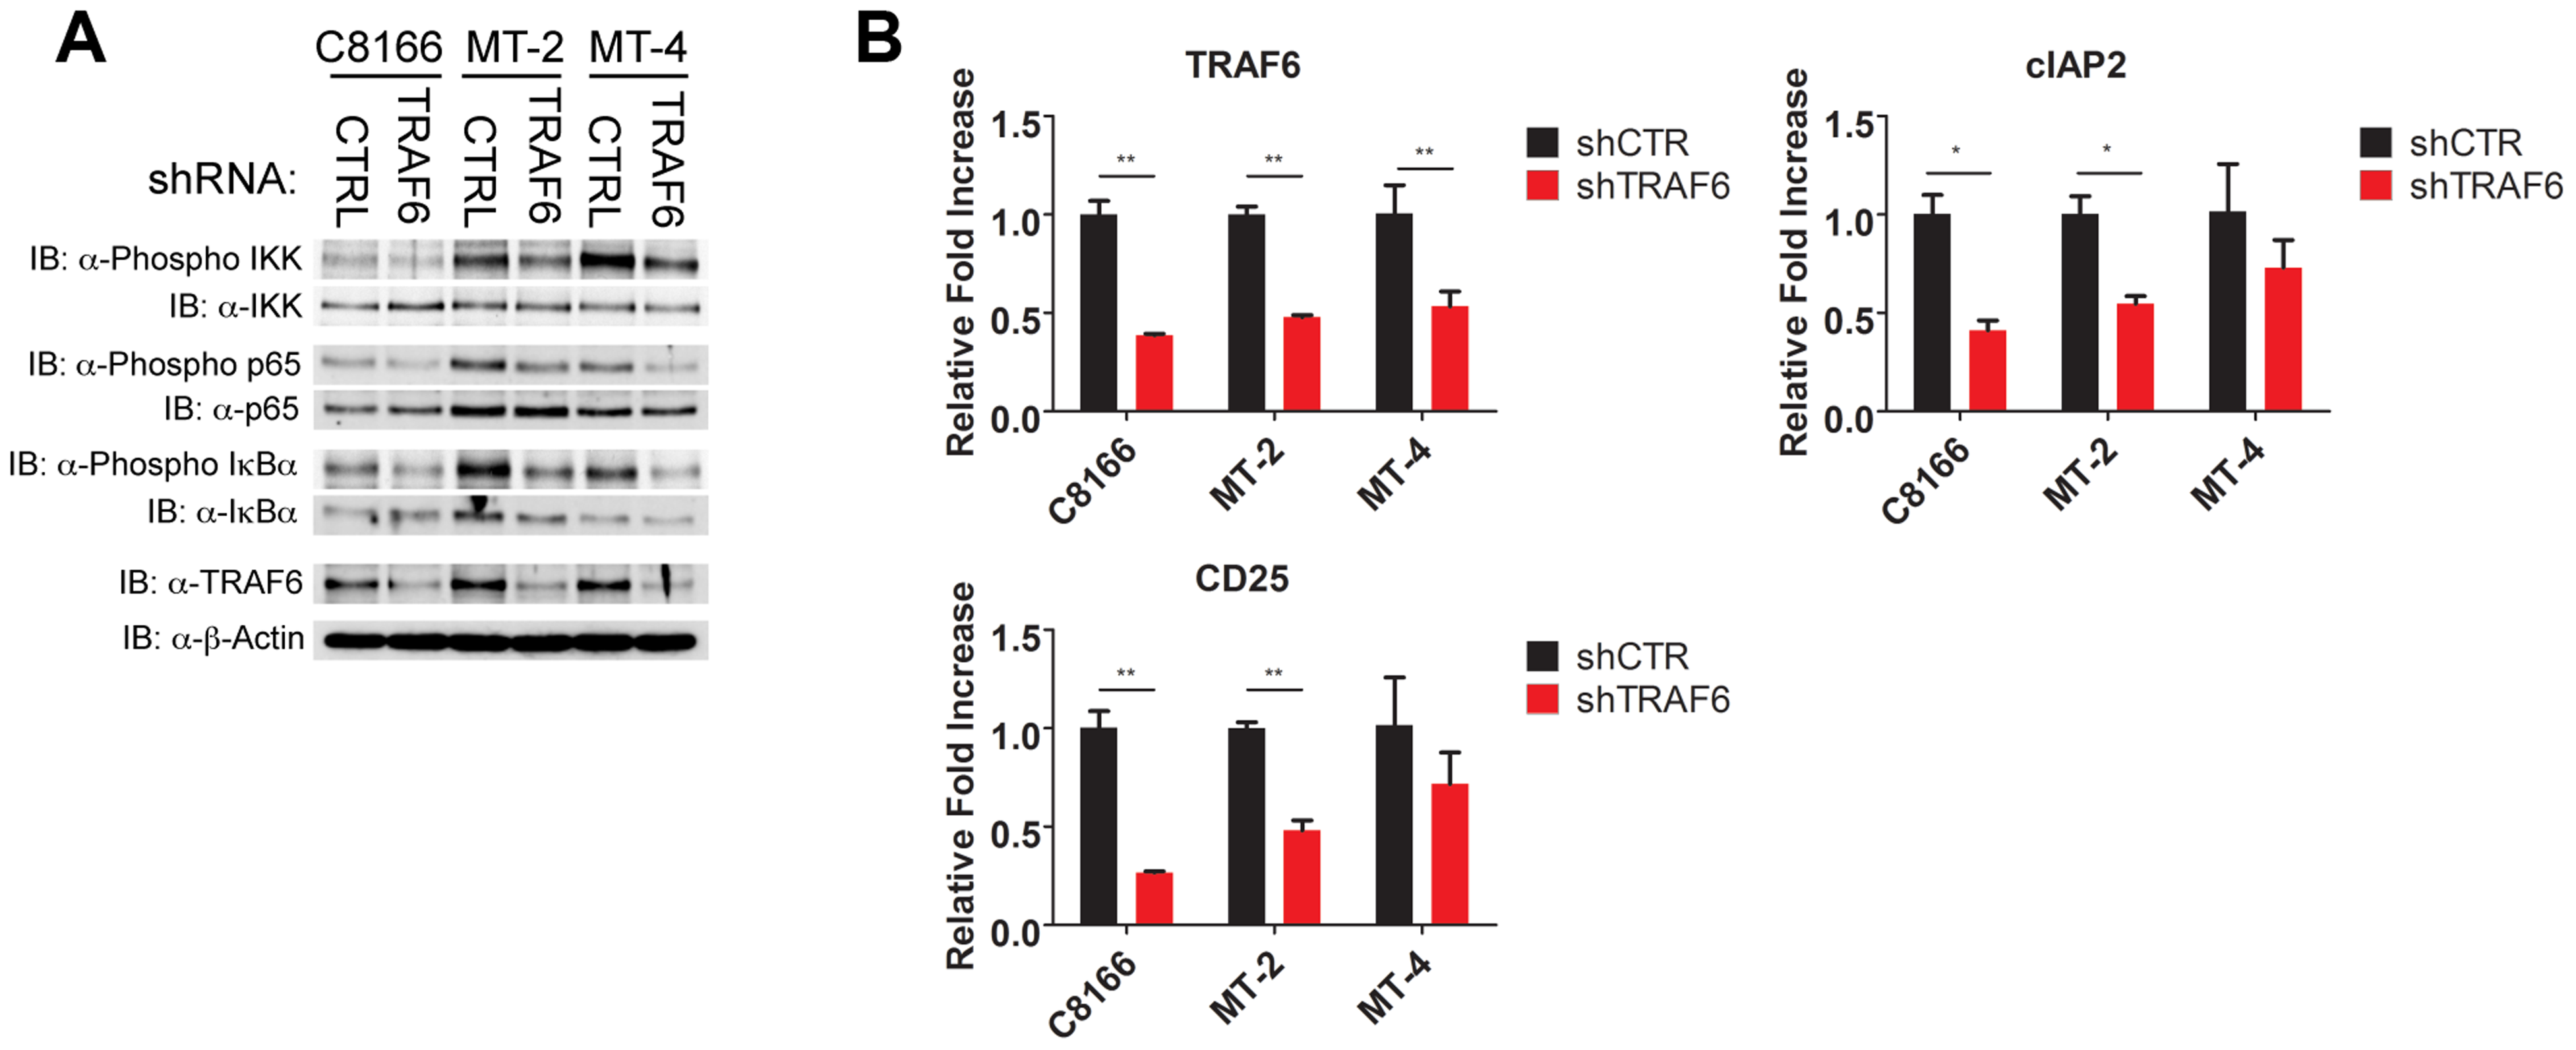 TRAF6 is required for NF-κB activation in HTLV-1 transformed T cells.